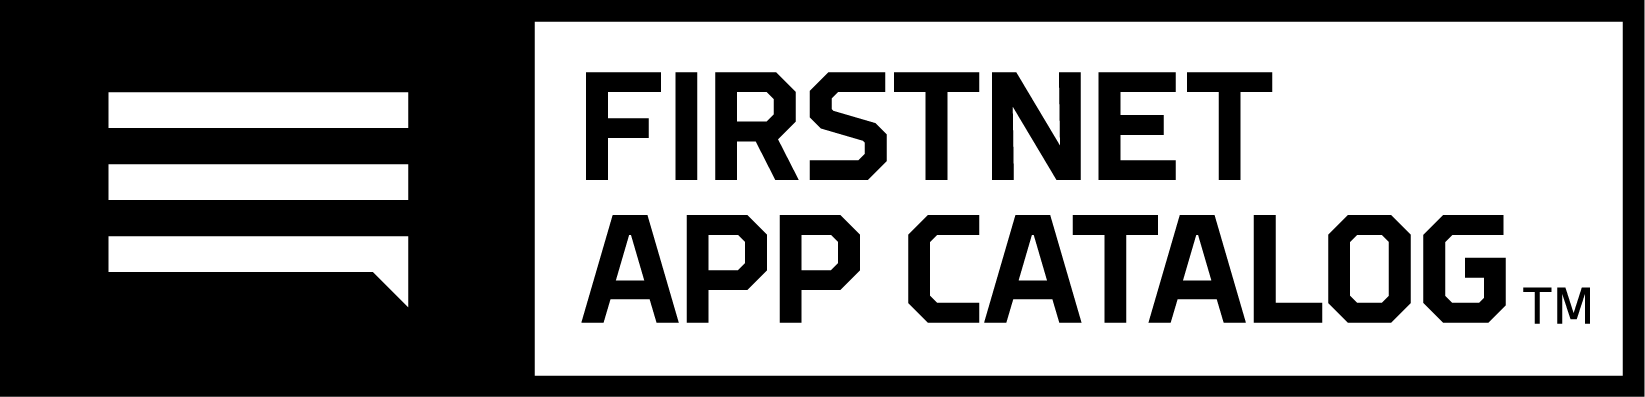 Firstnet App Catalog